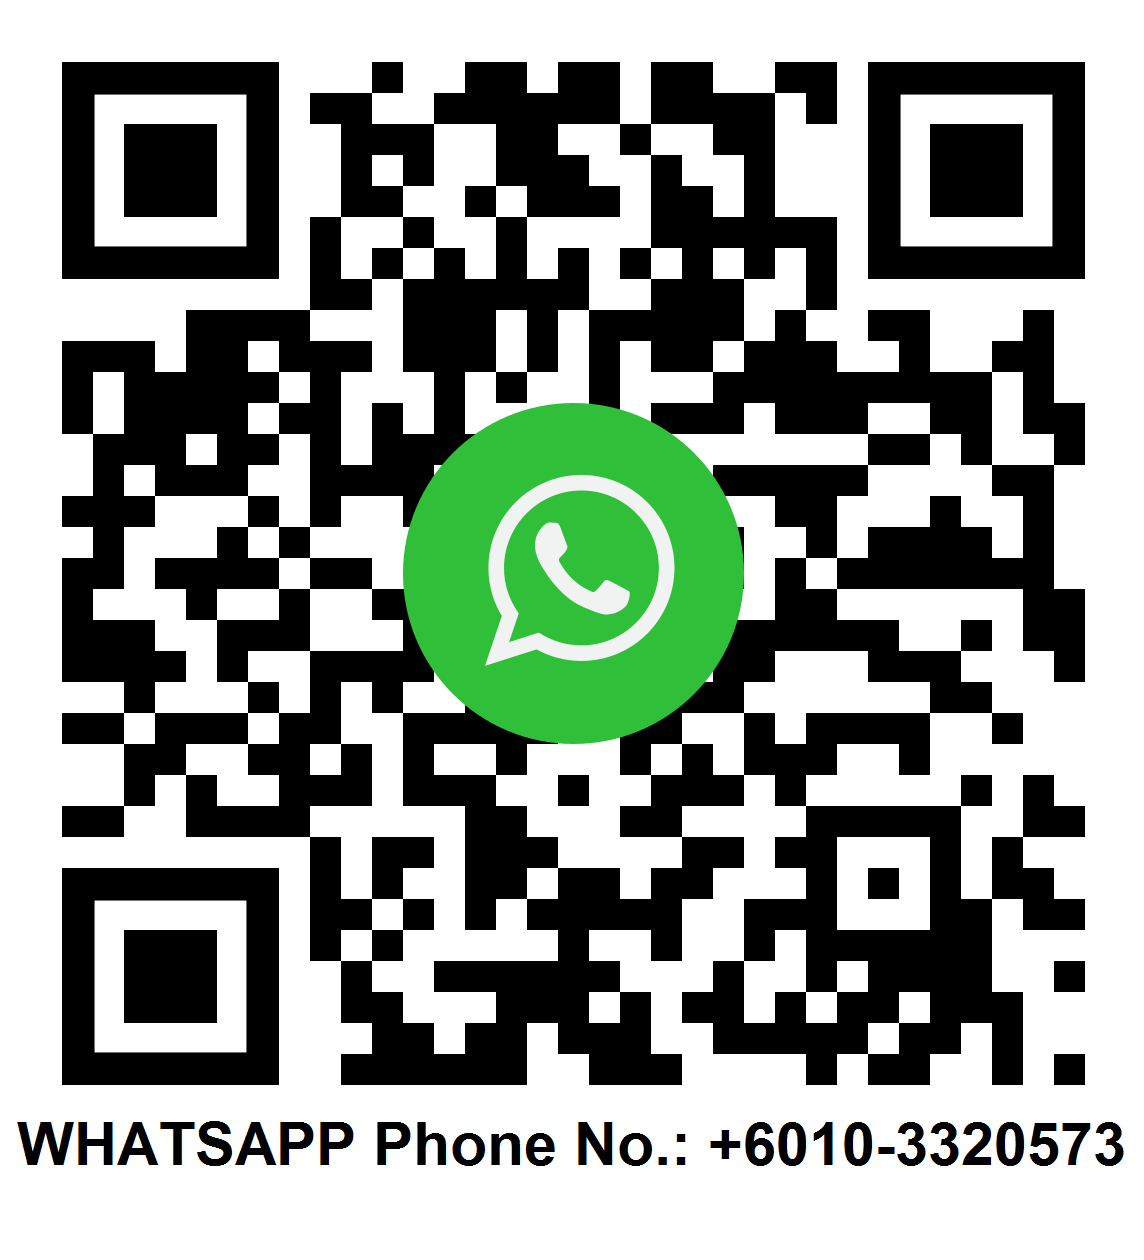 MDK SWIFTLET'S WHATSAPP